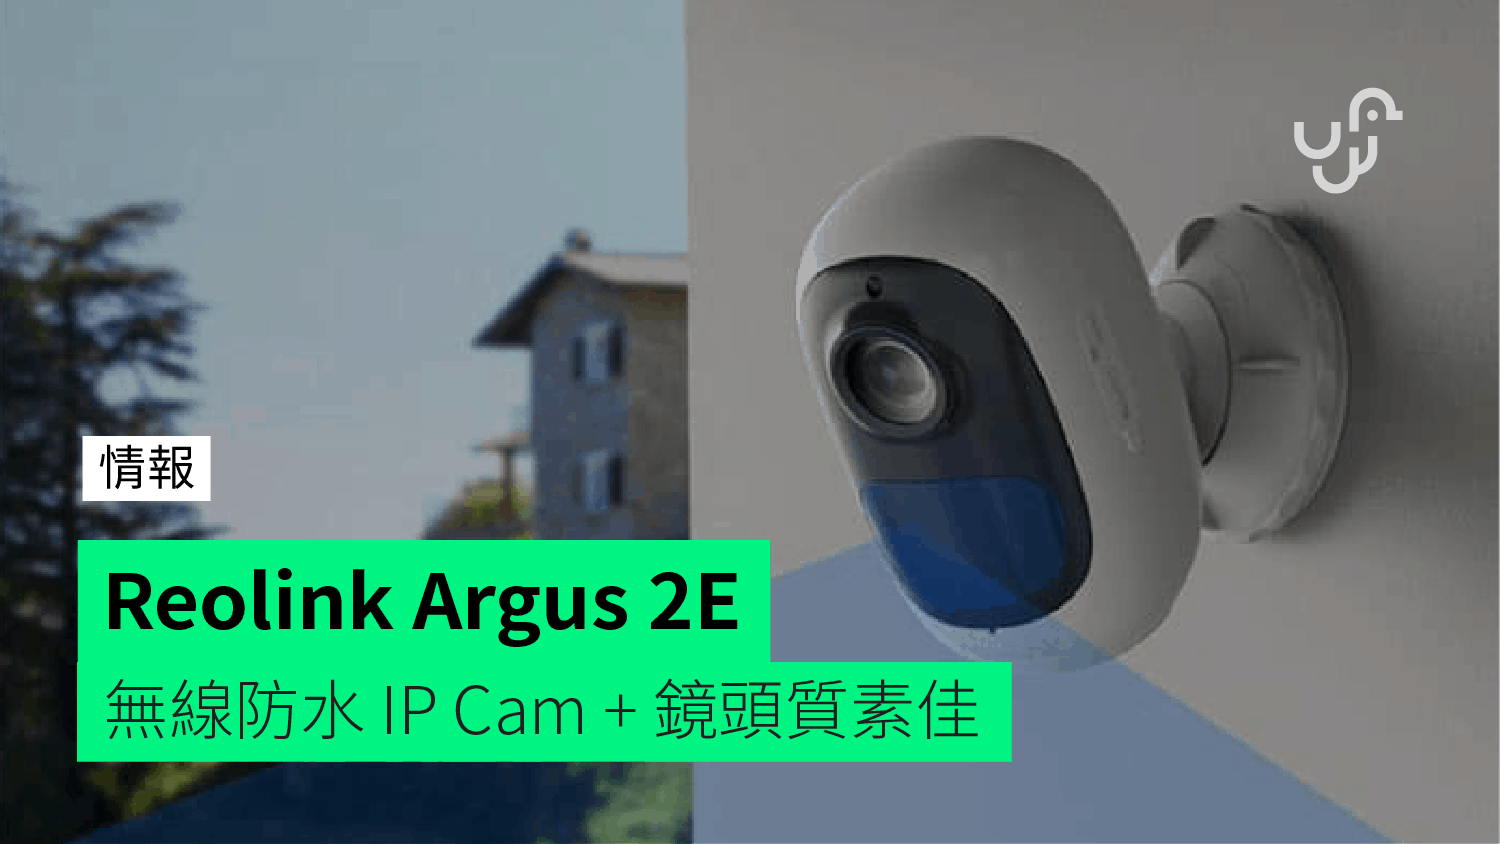 Reolink Argus 2E Waterproof Wireless IP Camera + Good Lens Quality